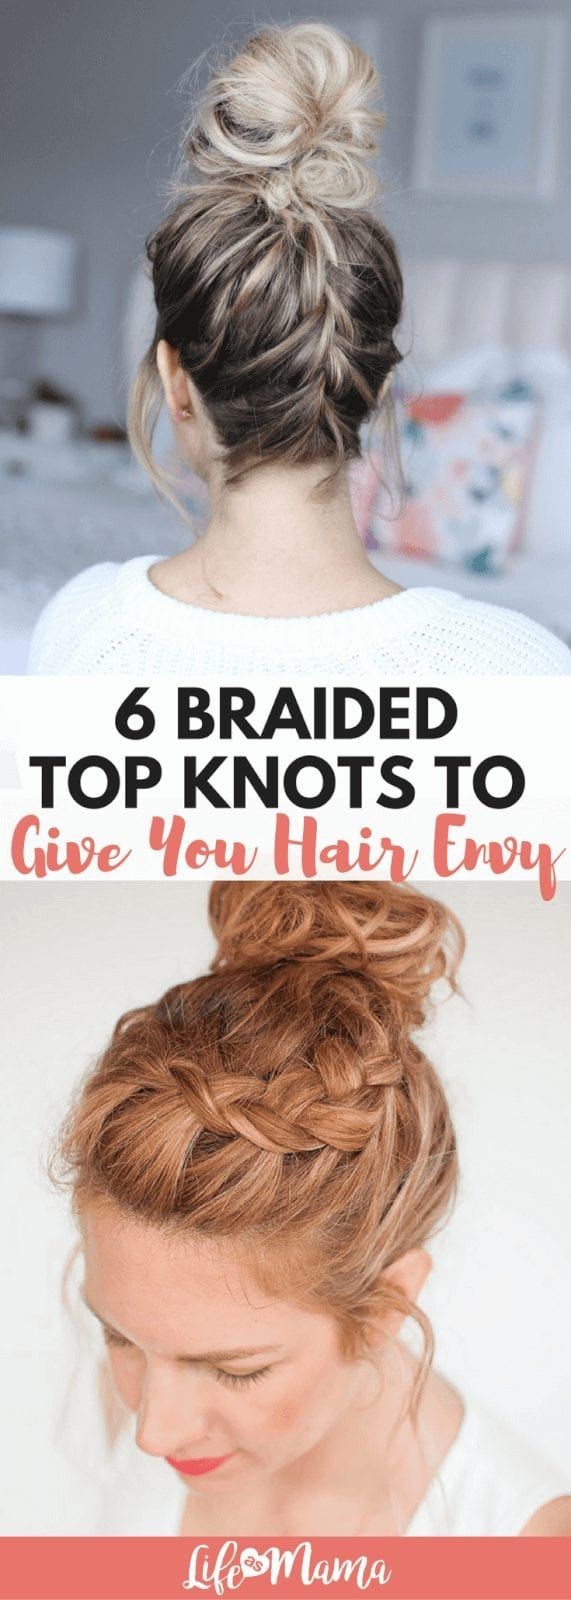 Combining my two fav styles? Sign me up! Here's a few of some amazing braided top knots that will keep you feeling beautiful. #LifeAsMama #topknot #topknotbraid #braid #hairstyle